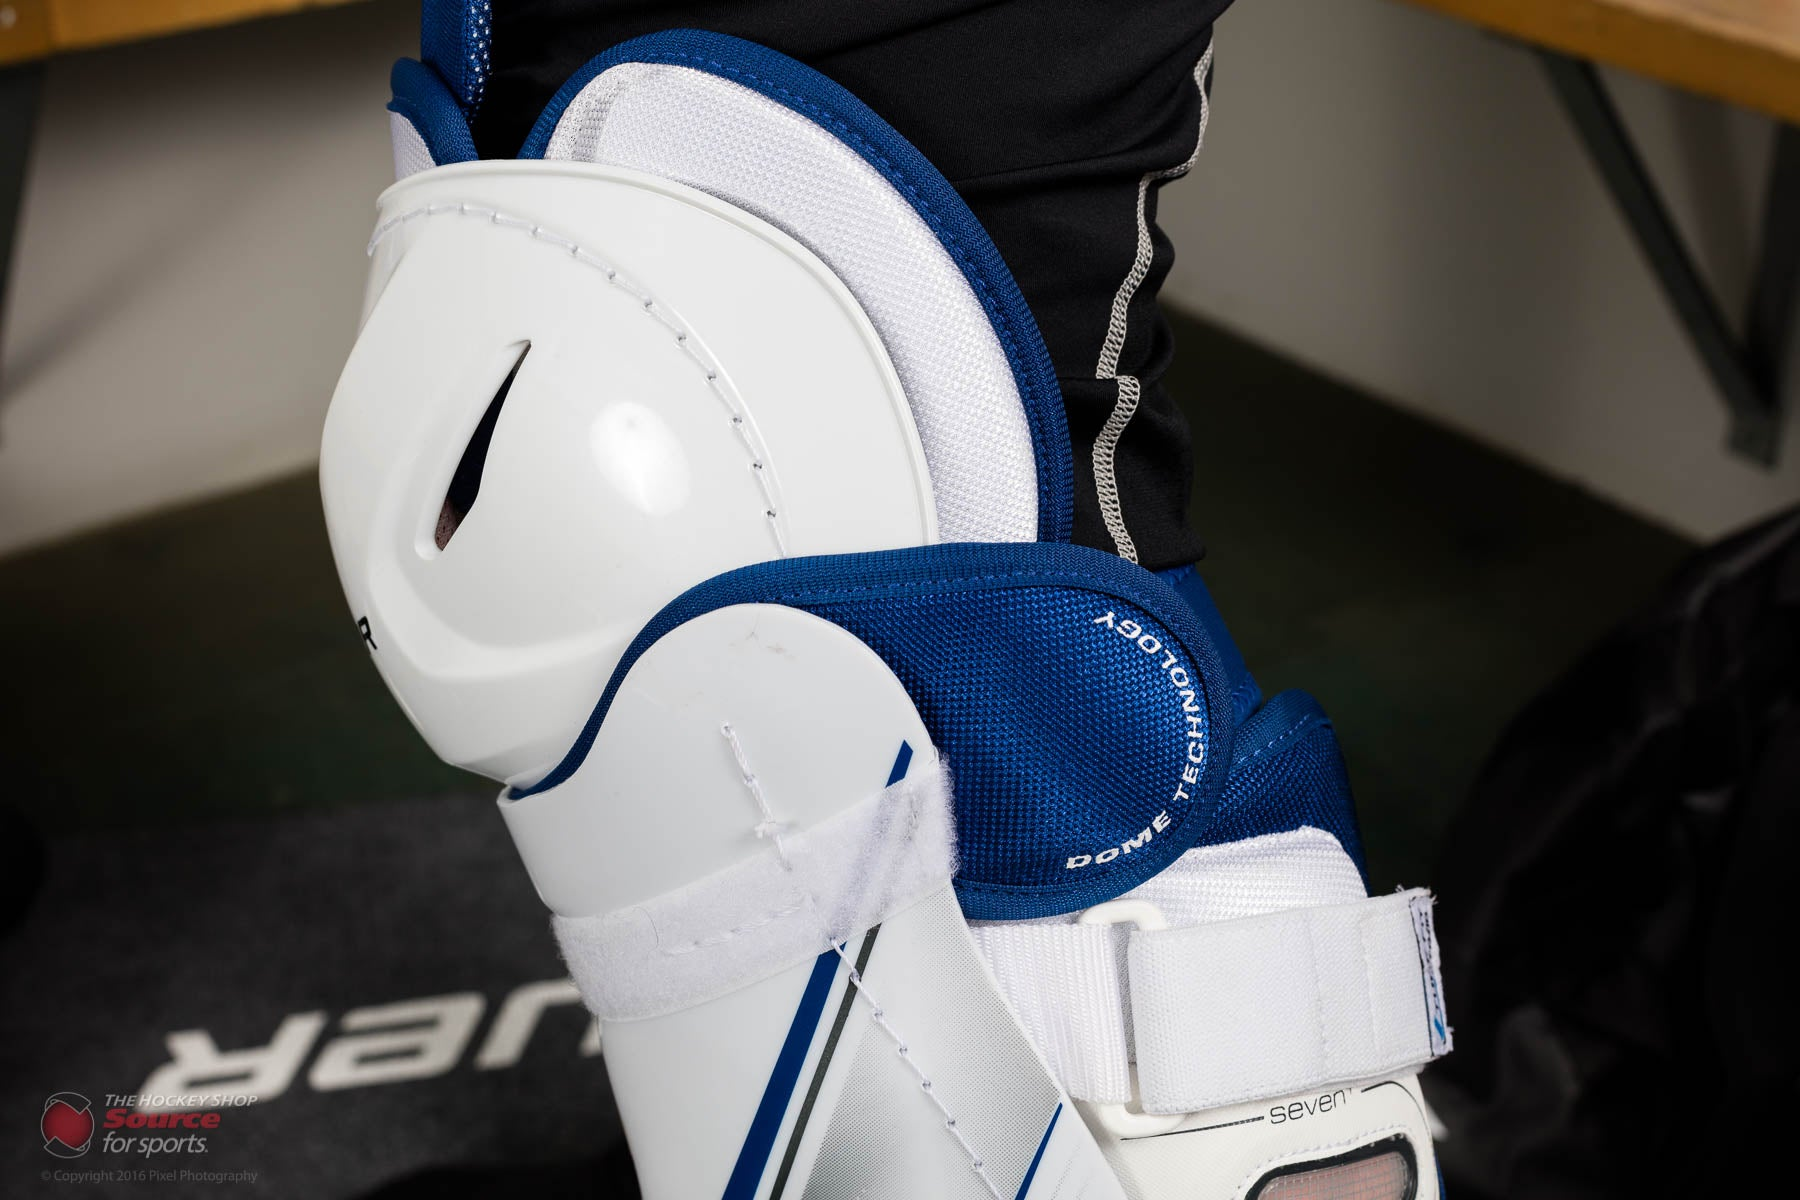 Bauer 1N Protective